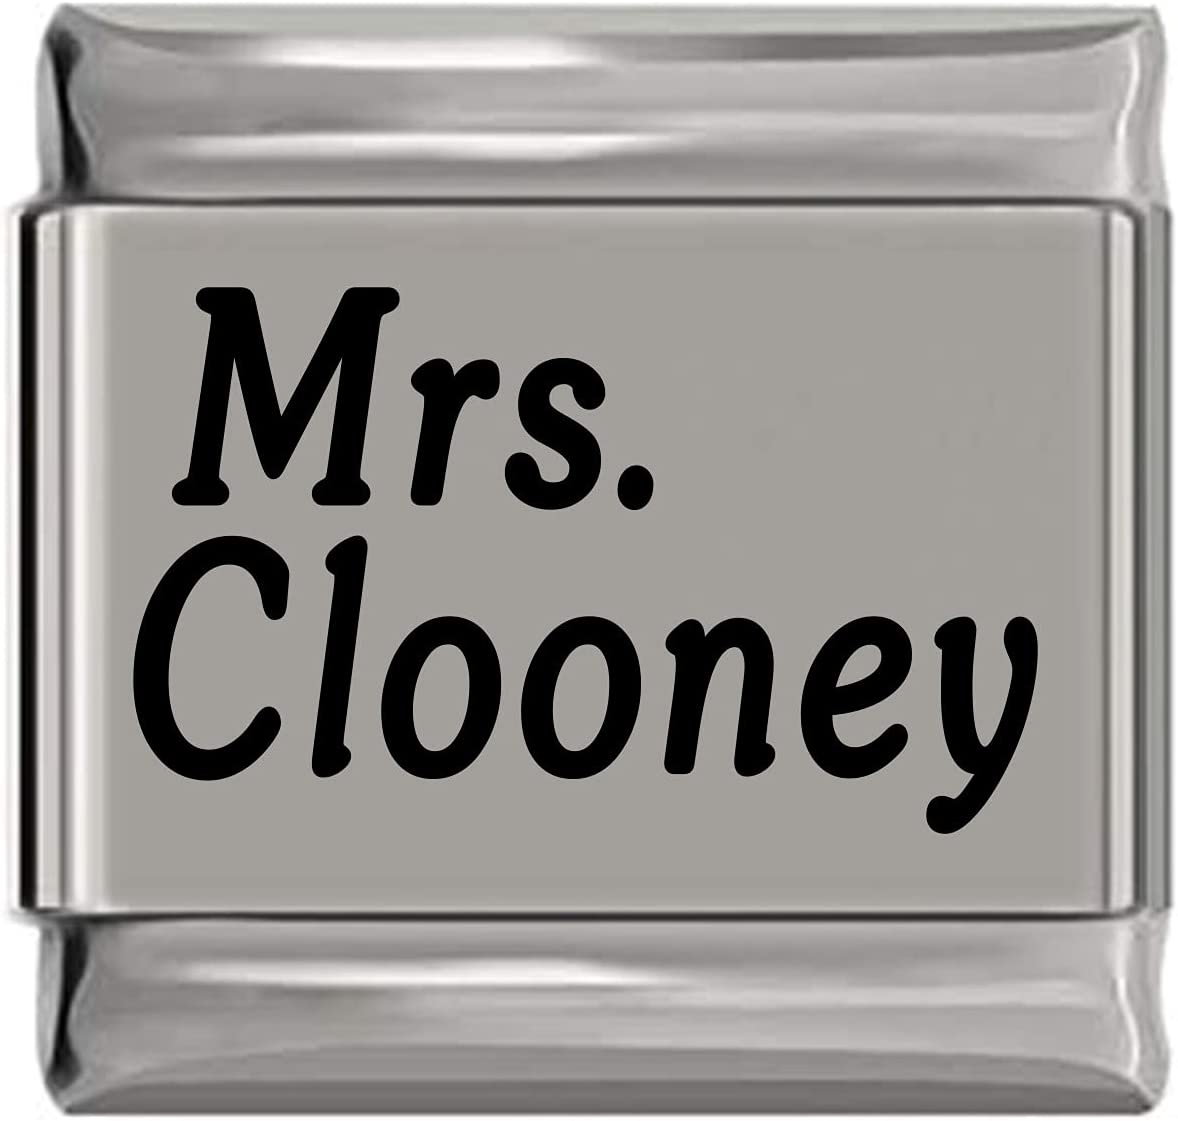 Mrs Spasm price Clooney Laser Max 78% OFF Italian Charm Engraved